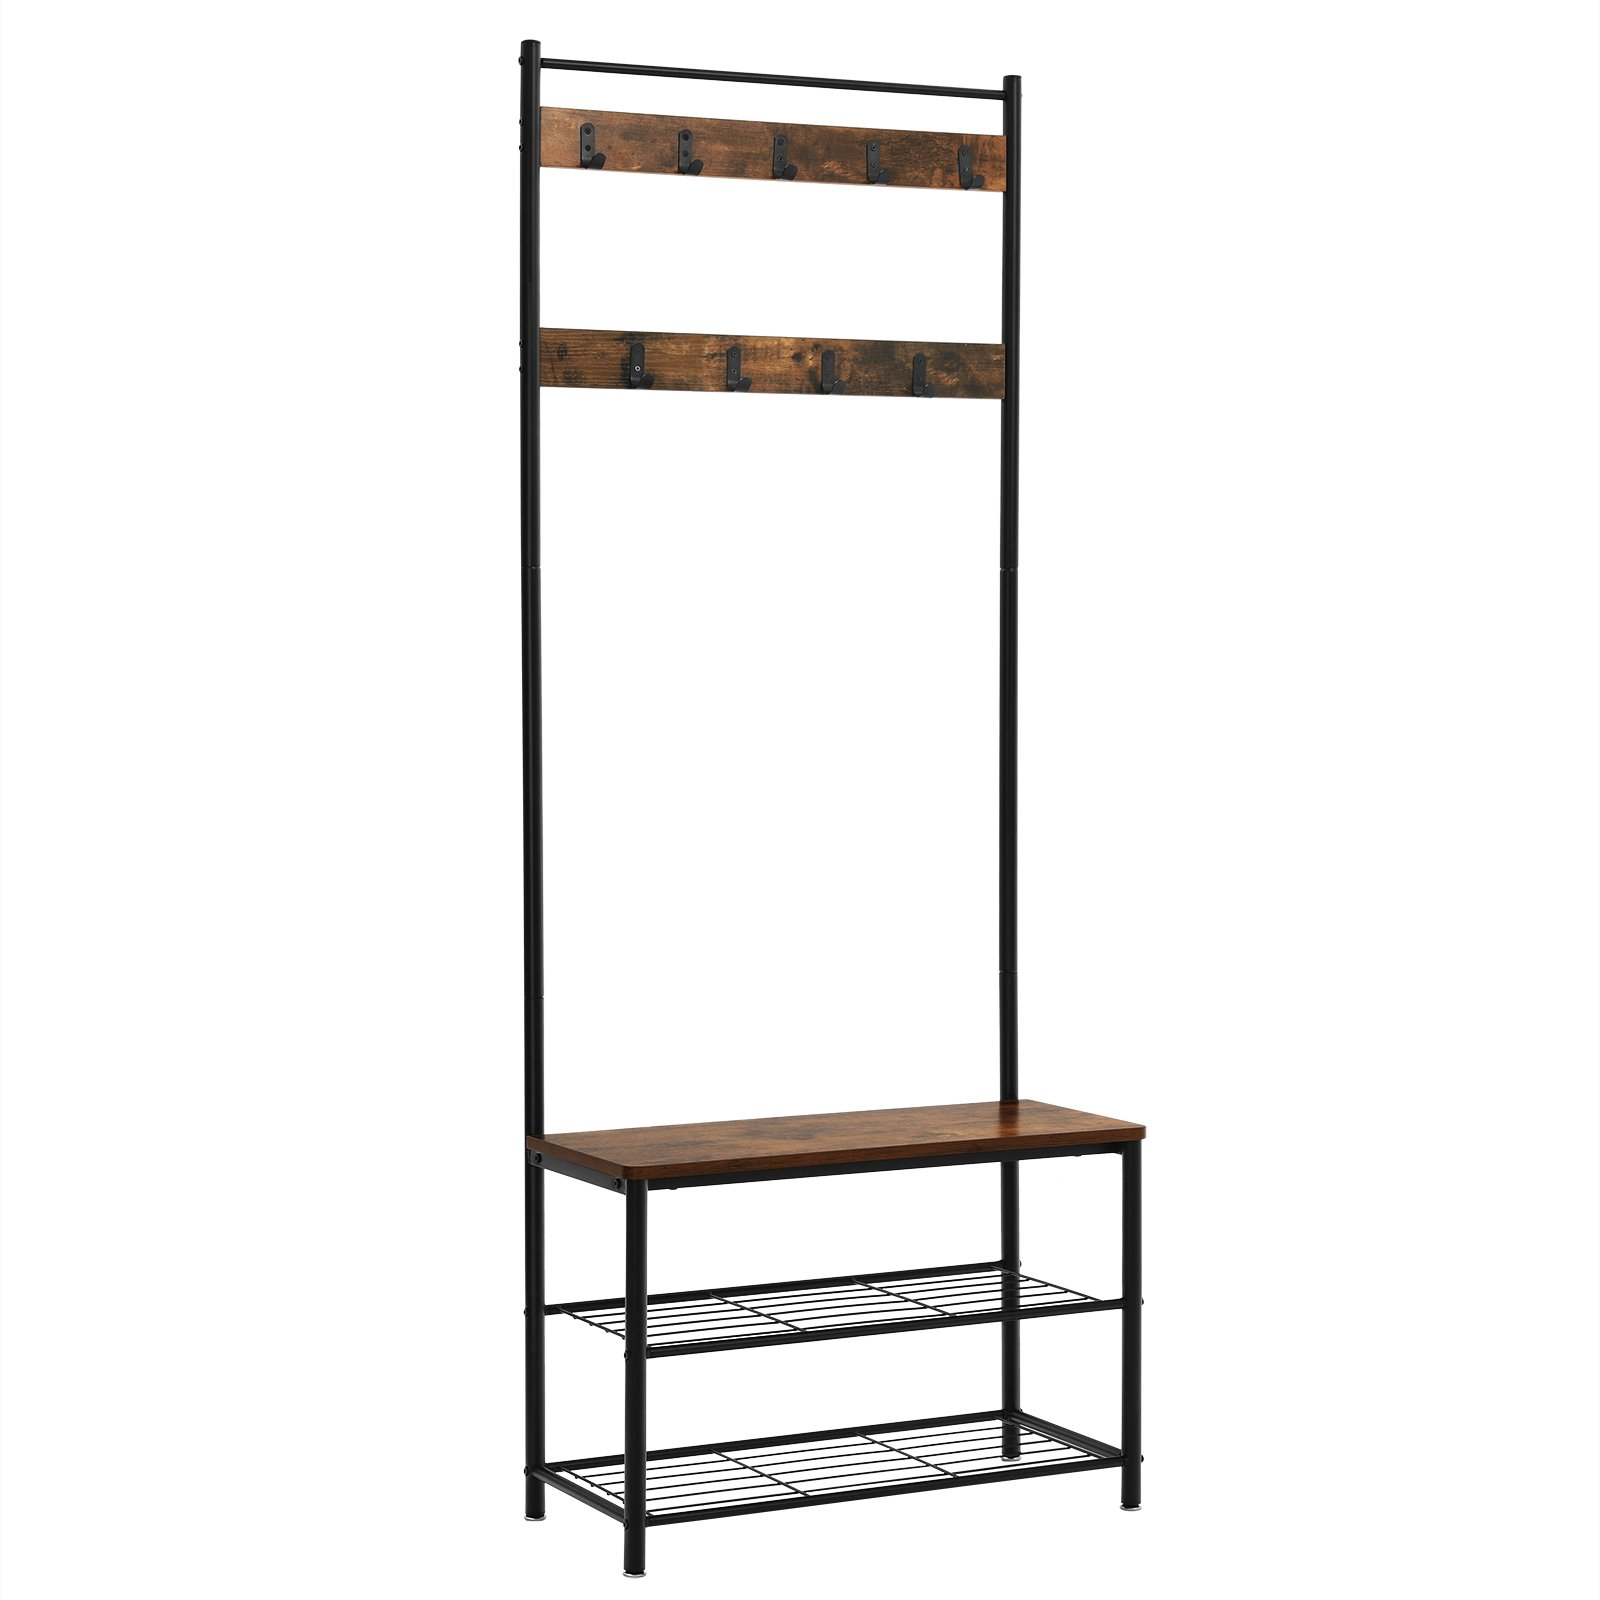 SONGMICS Vintage Coat Rack with Hooks, Hall Tree Entryway Shoe Bench Rack and Coat Stand, Storage Shelf Organizer, Accent Furniture with Metal Frame UHSR41BX